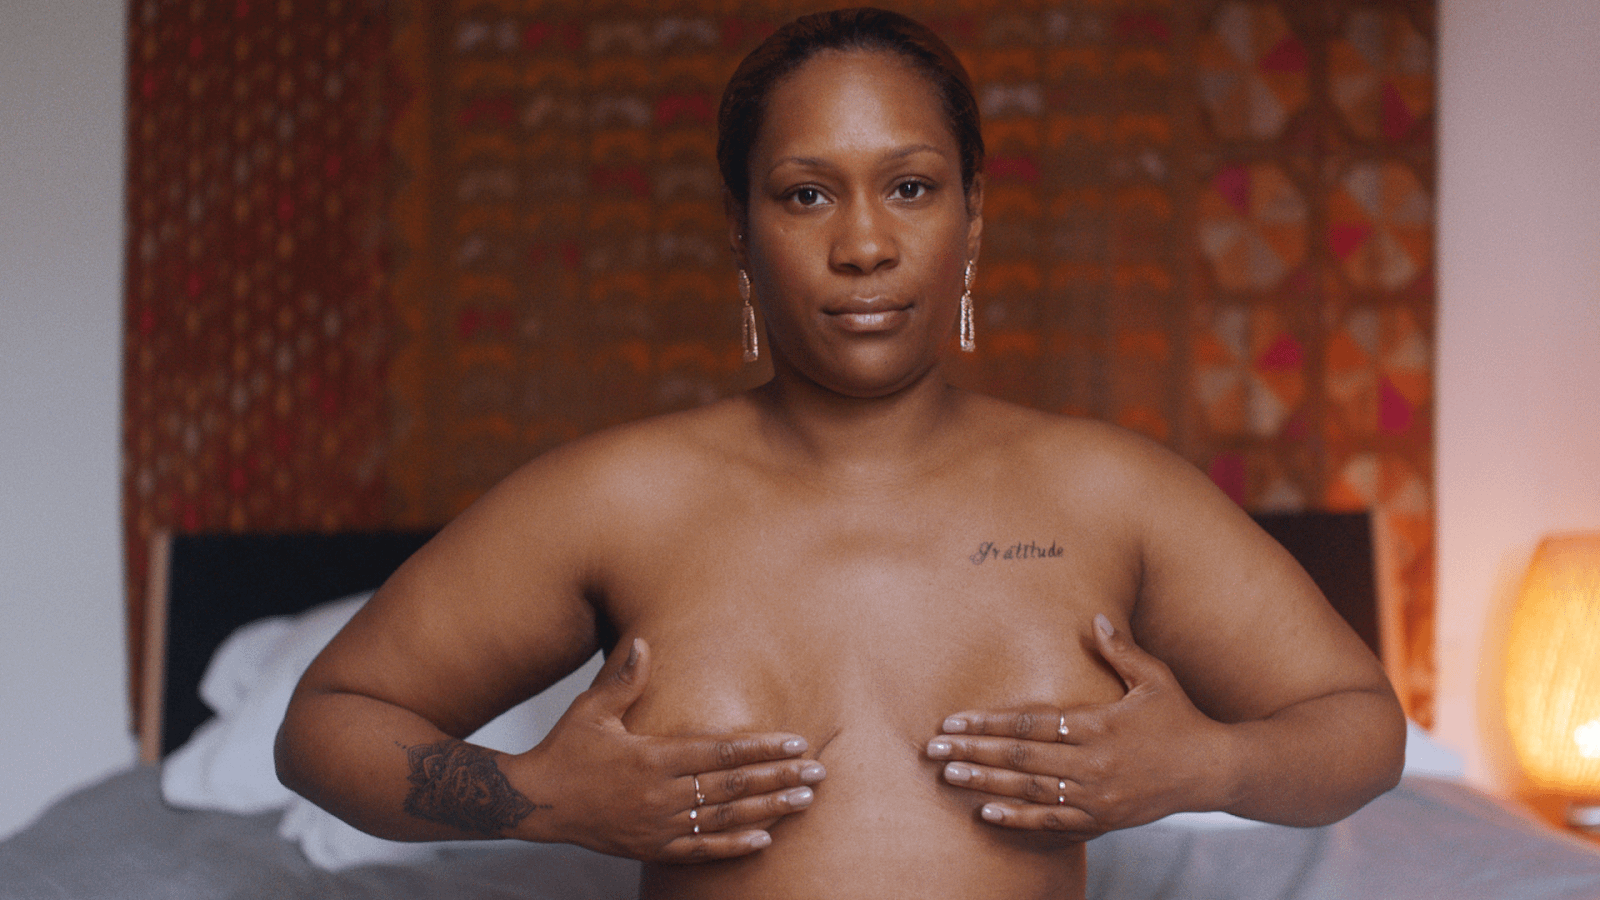 Why black women, men, and non-binary people need to check their boobs and chests